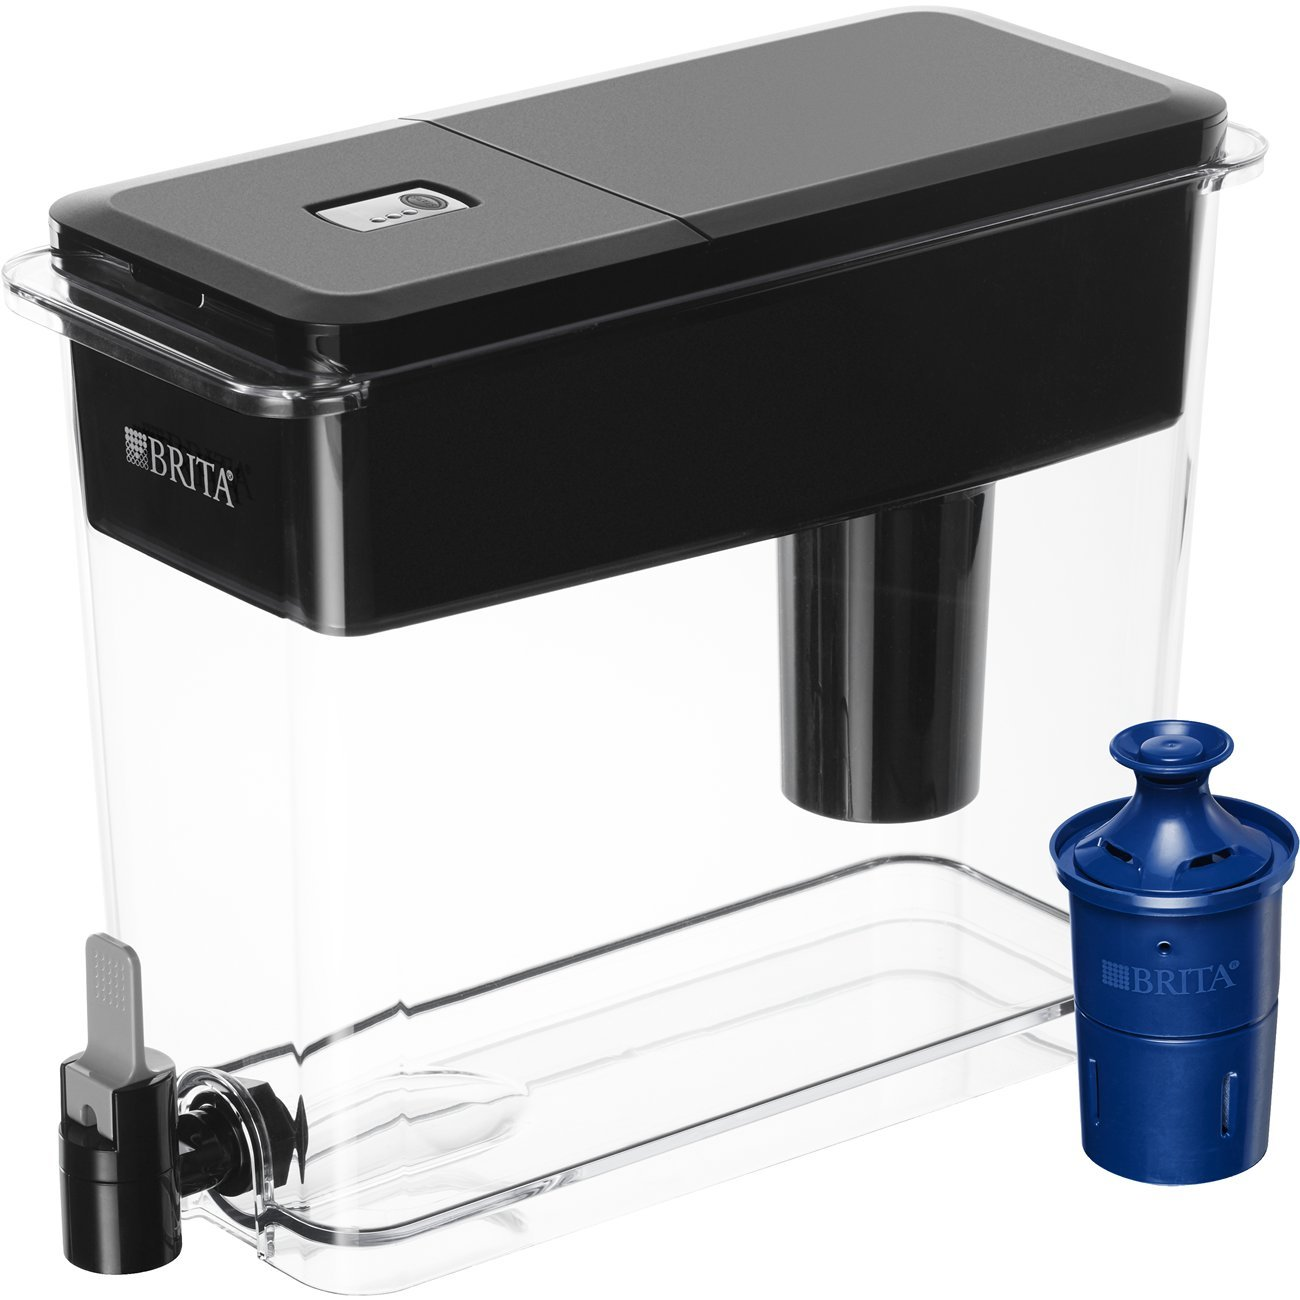 InSinkErator F-HC1100MBLK Indulge Contemporary Hot and Cold Water Dispenser Renewed Matte Black